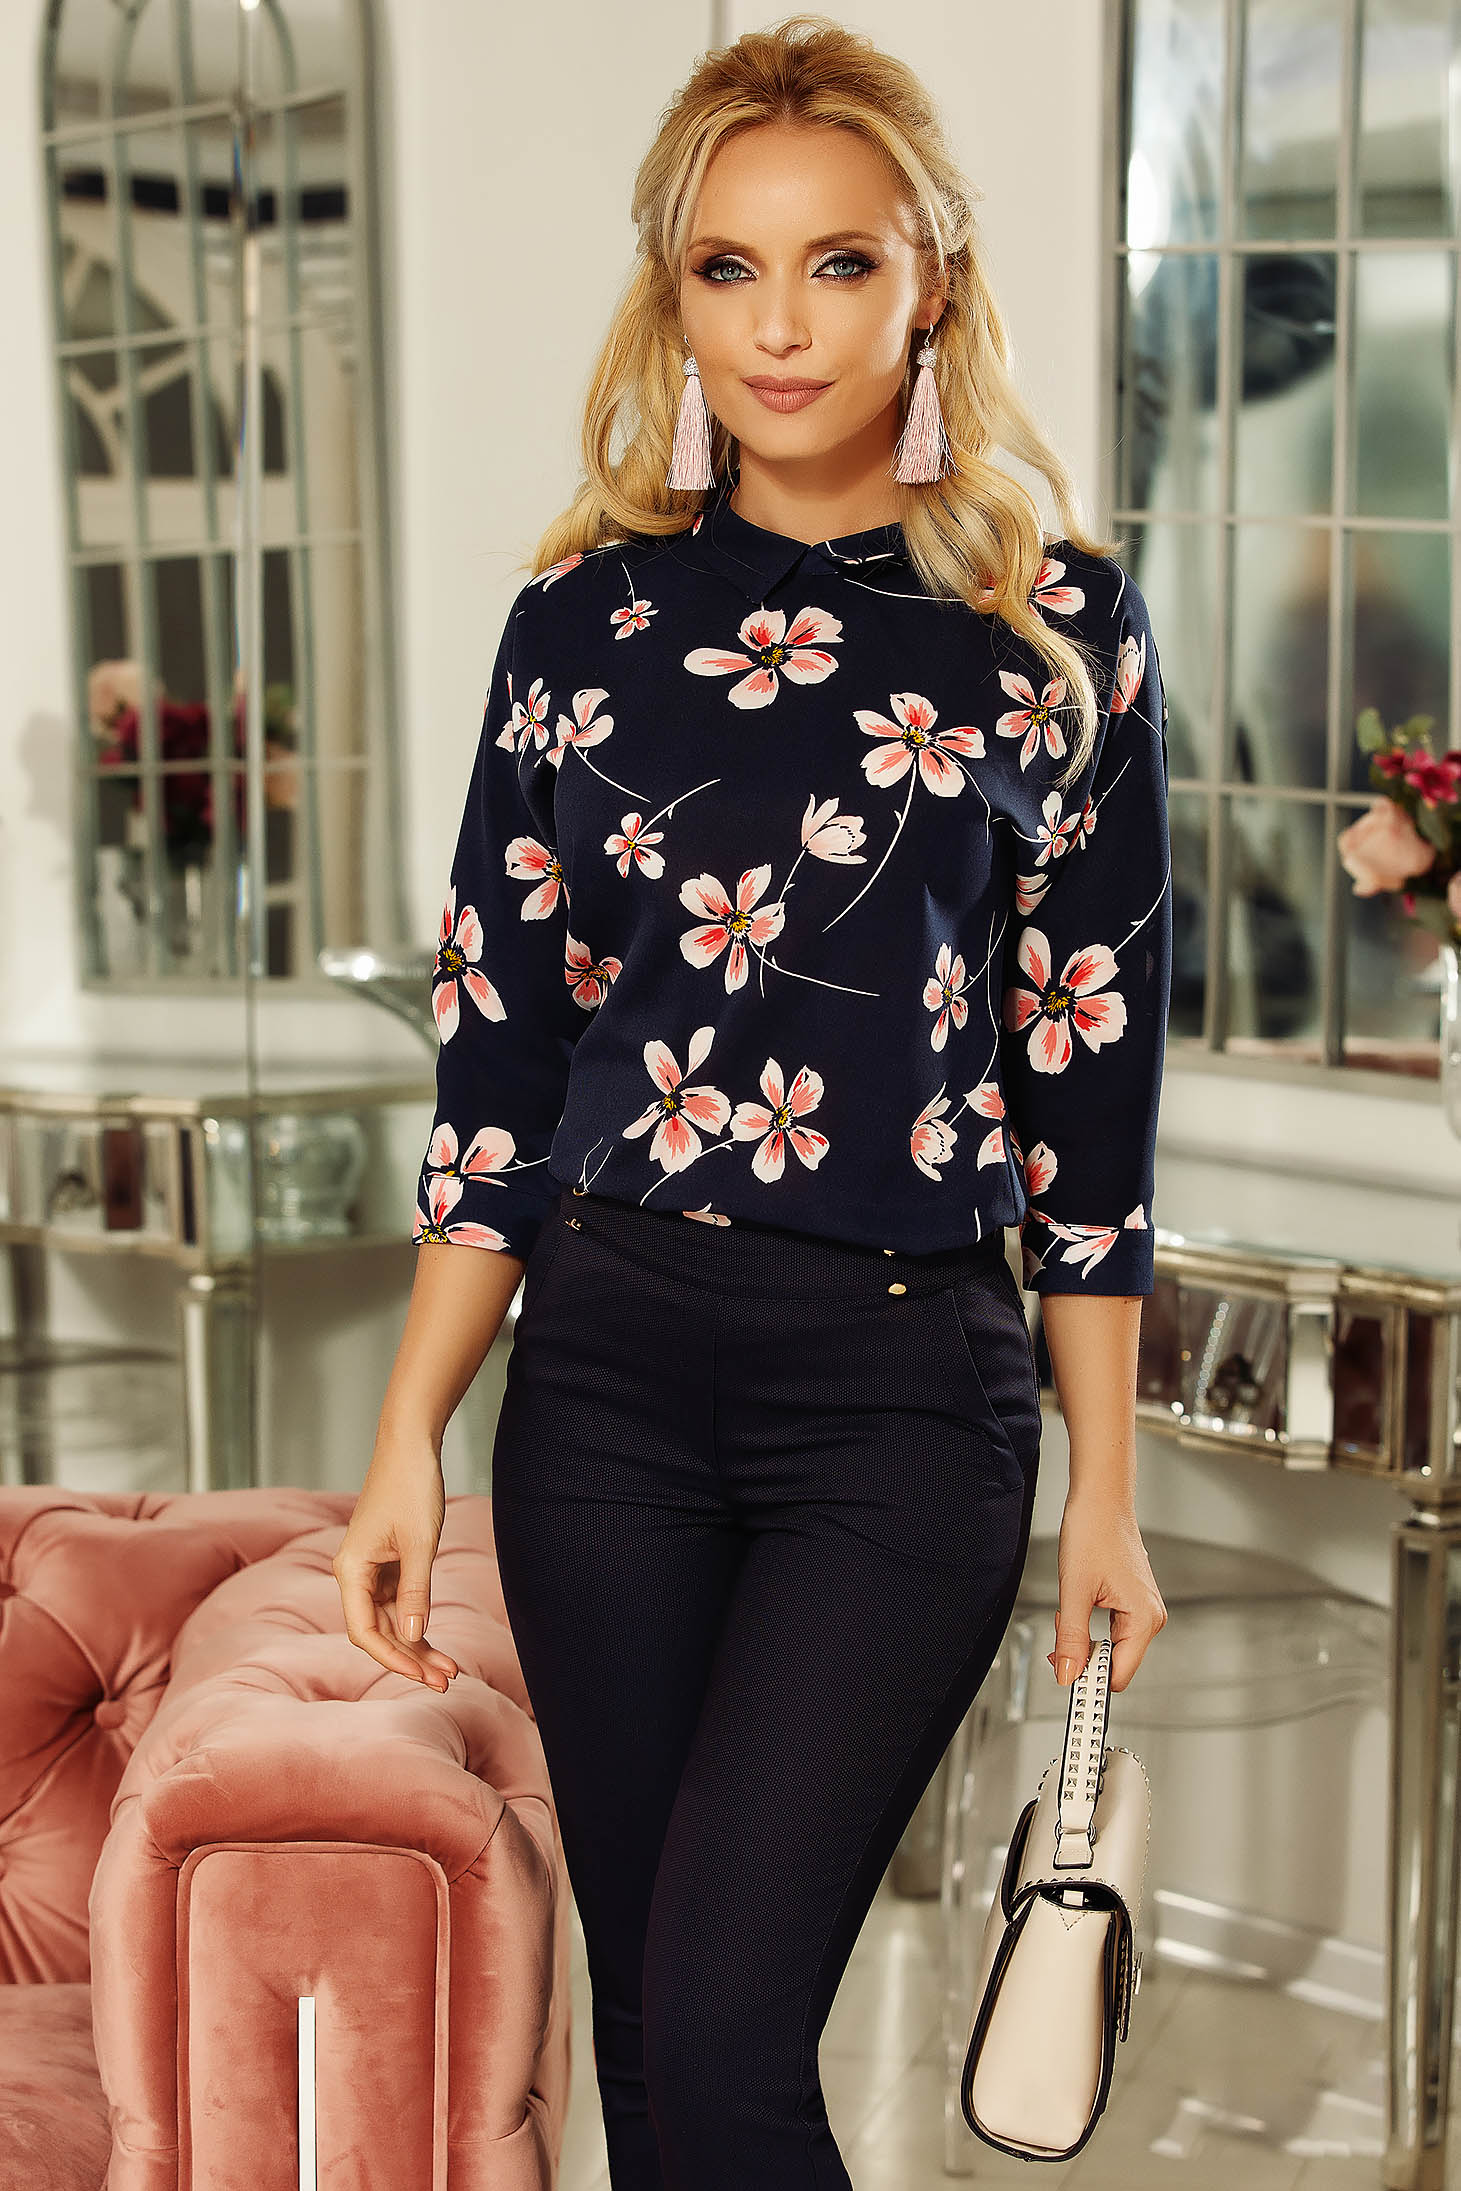 Fofy darkblue women`s blouse elegant airy fabric flared with floral print